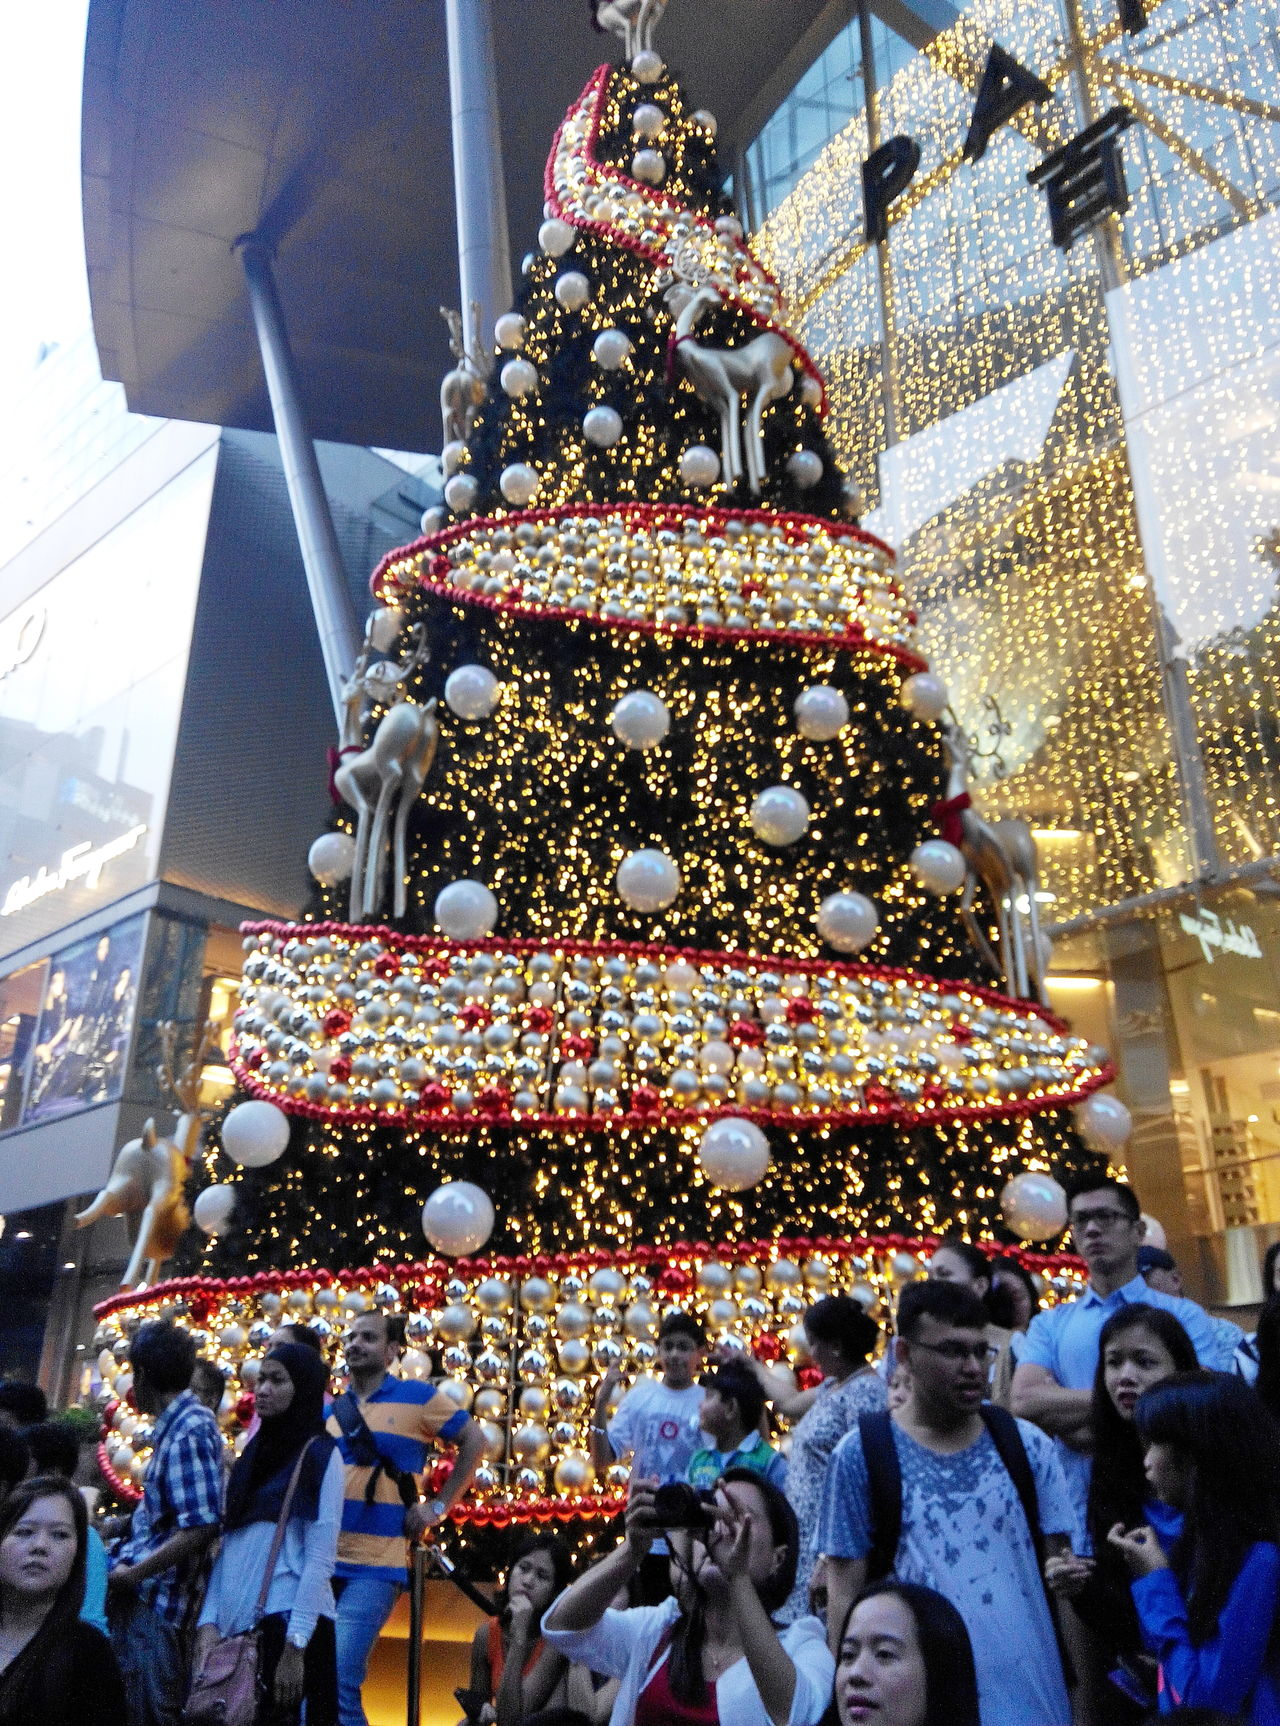 Festive Mood strolls City Life Cityscape Crowded Festive Crowds Festive Season Shopping Shopping Center Shopping Time Feel The Journey Beautifully Organized